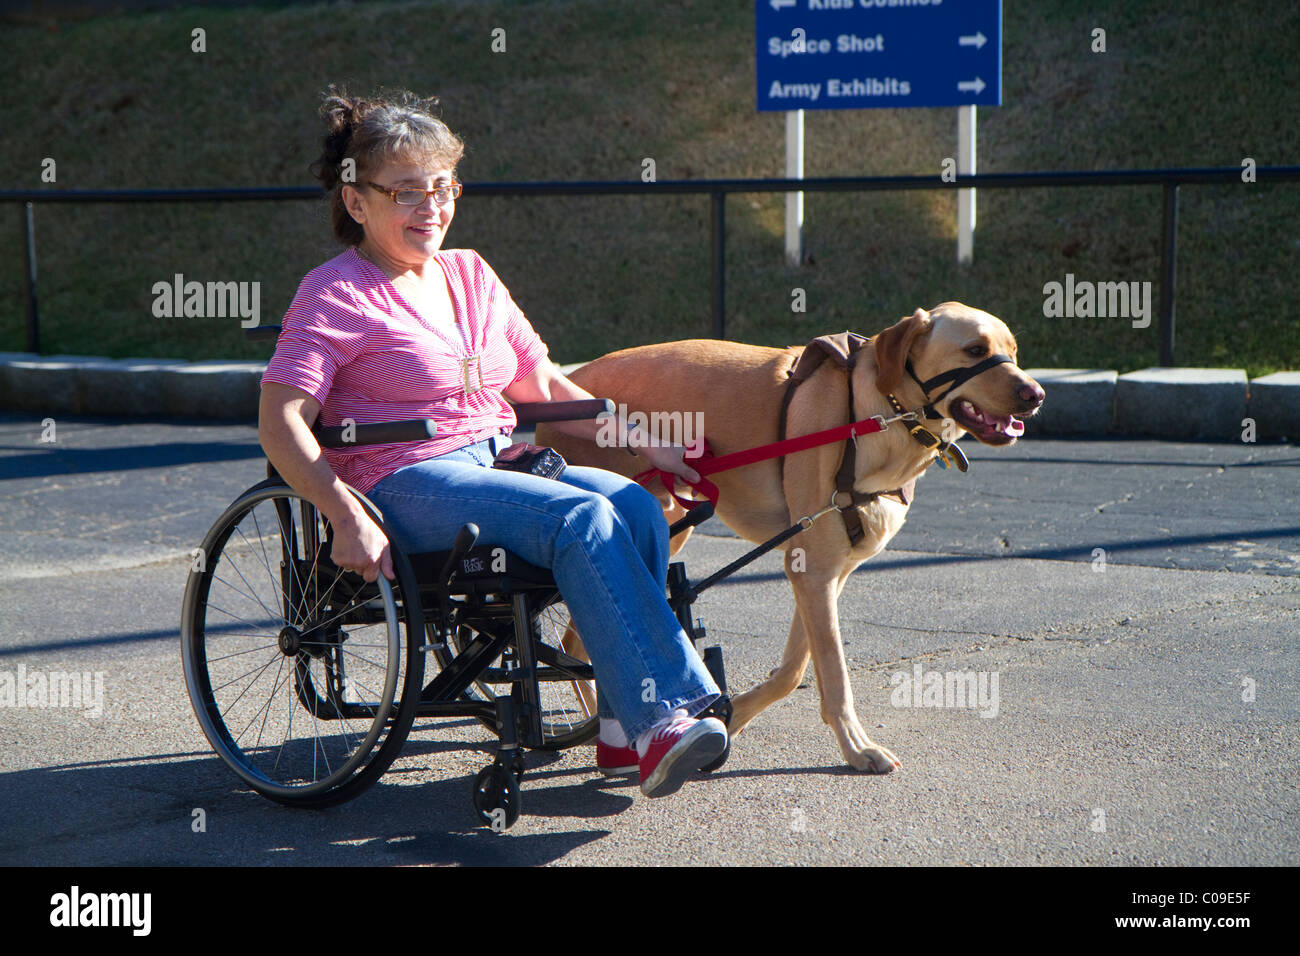 Disabled woman in a wheelchair using a service dog for help. - Stock Image